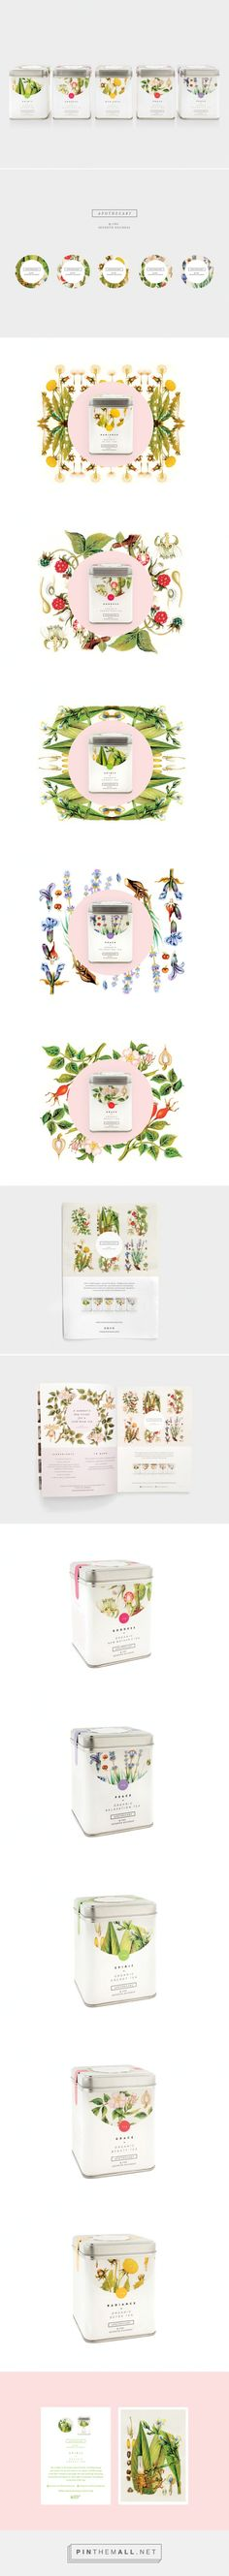 Lovely Apothecary Tea Packaging by Nude Design Studio for Seventh Dutchess…